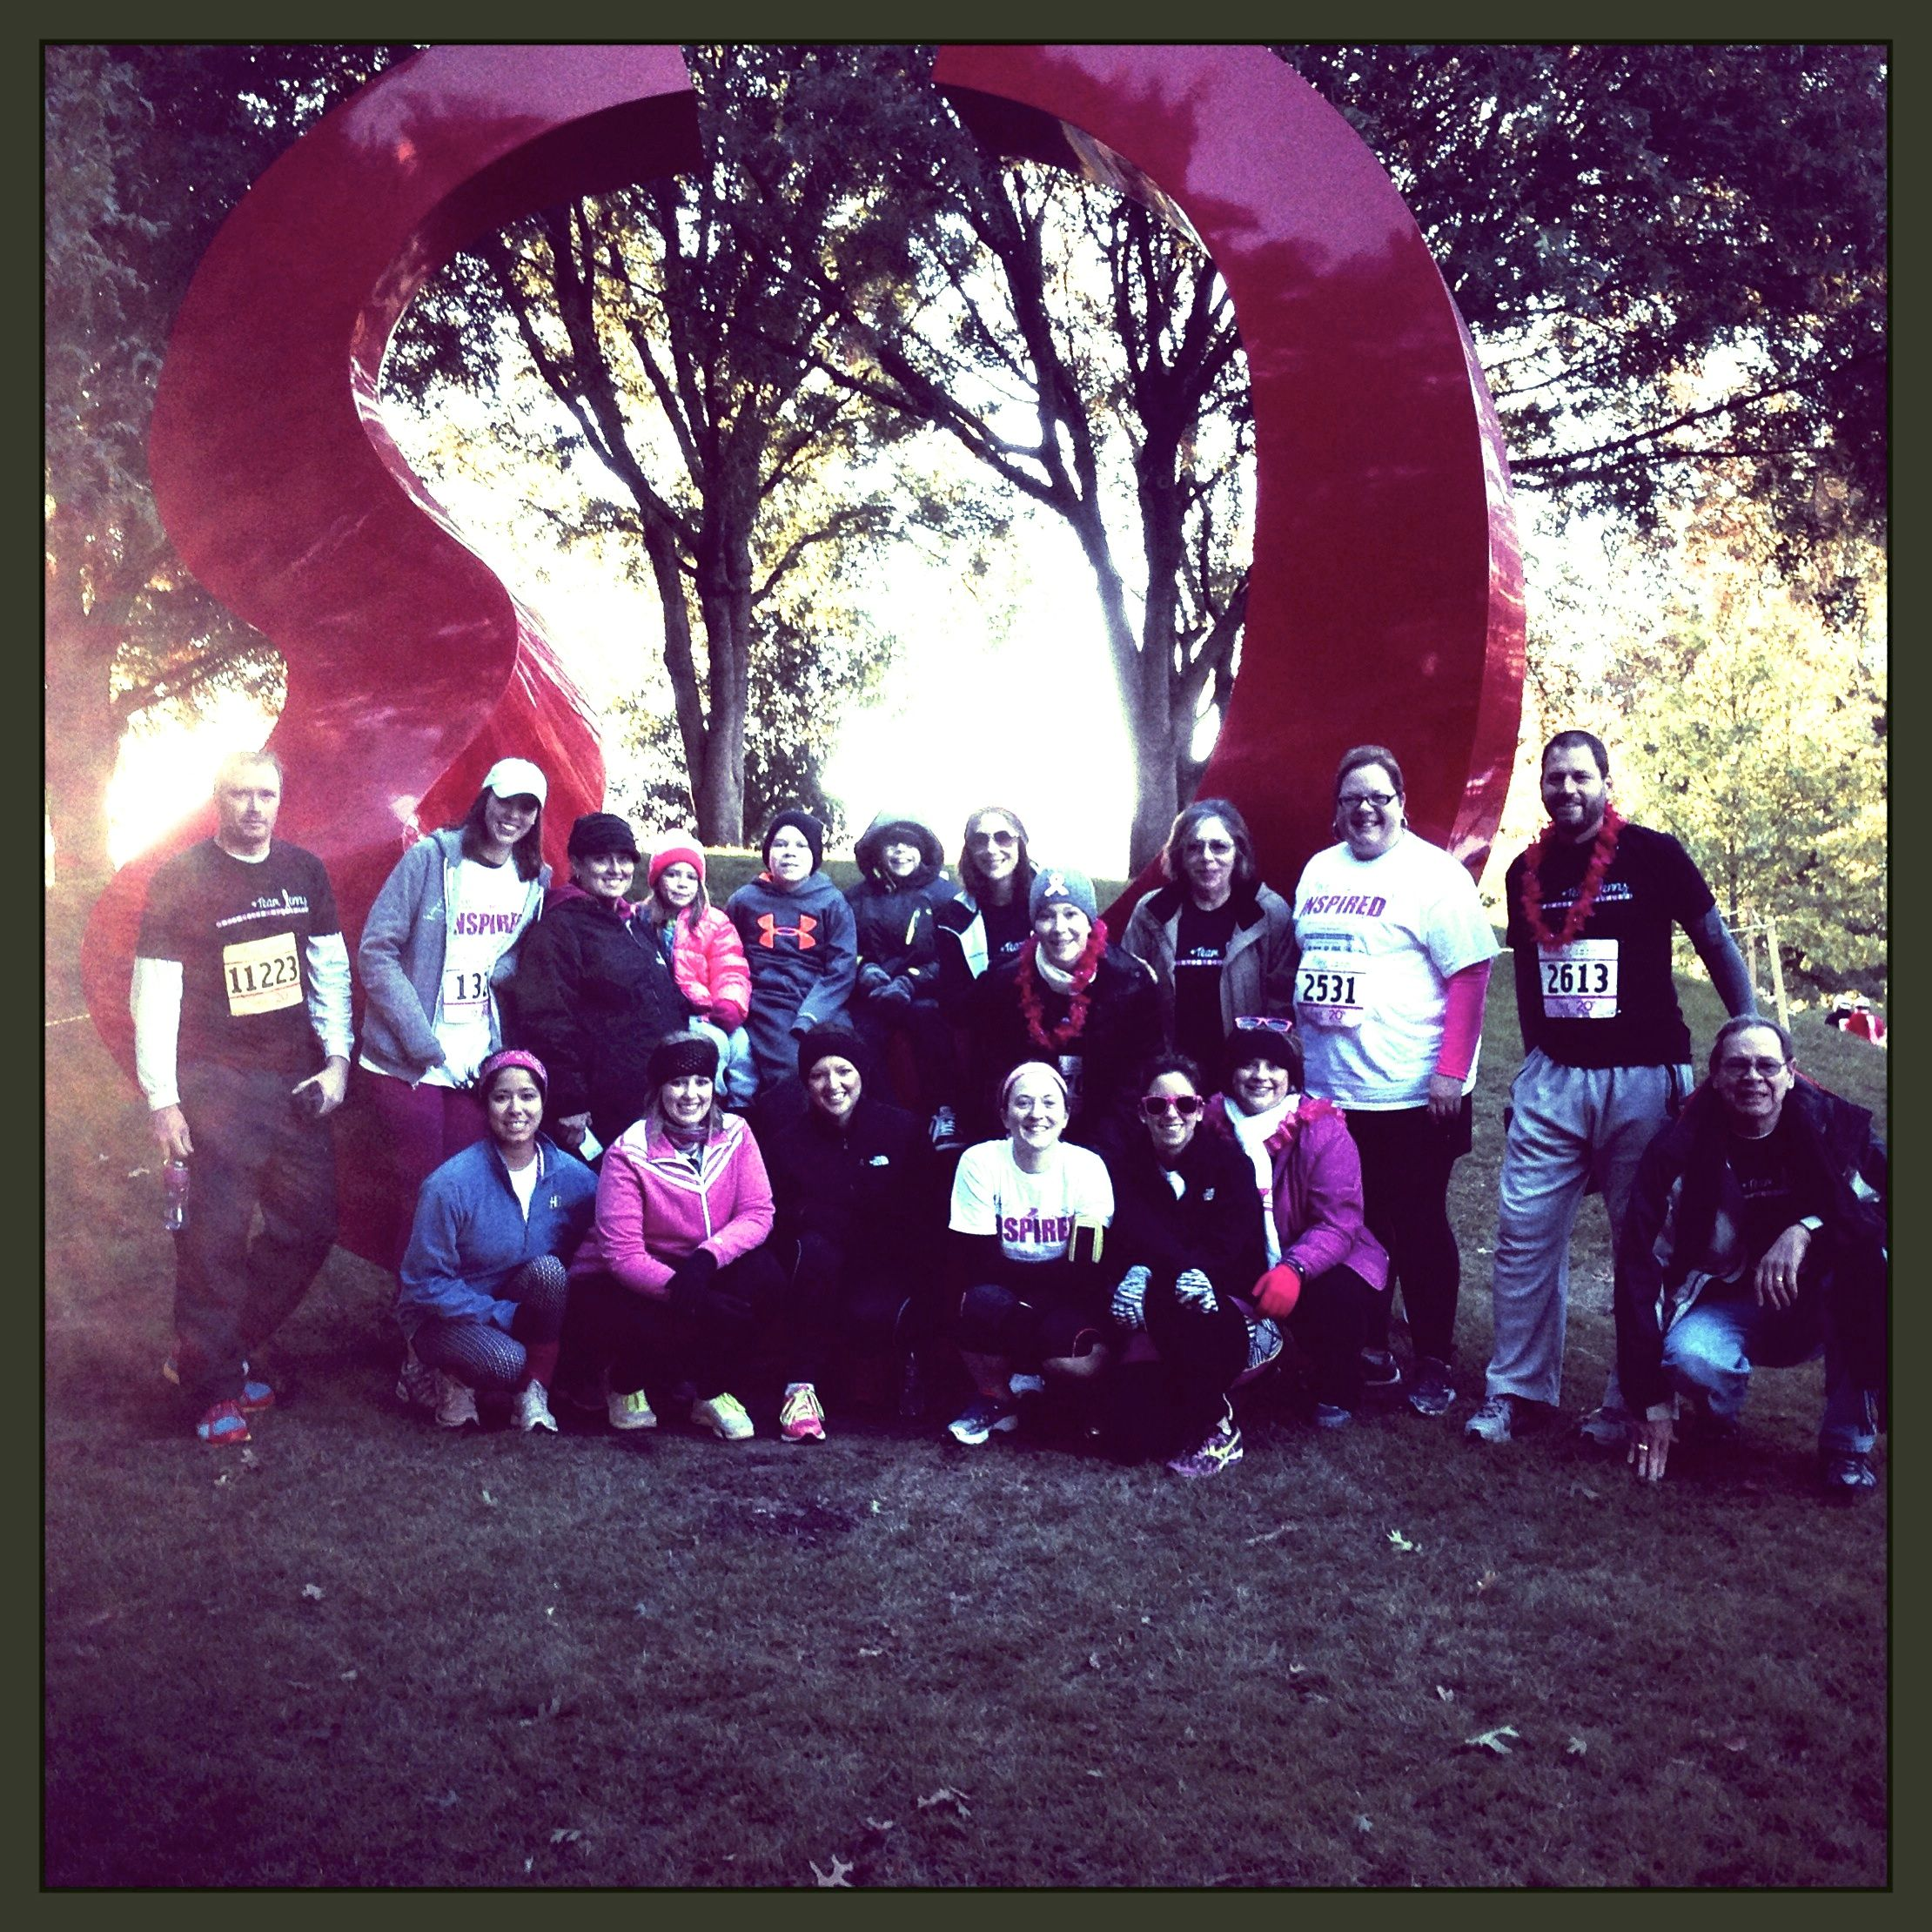 2013 Komen Run - lots of great love and support